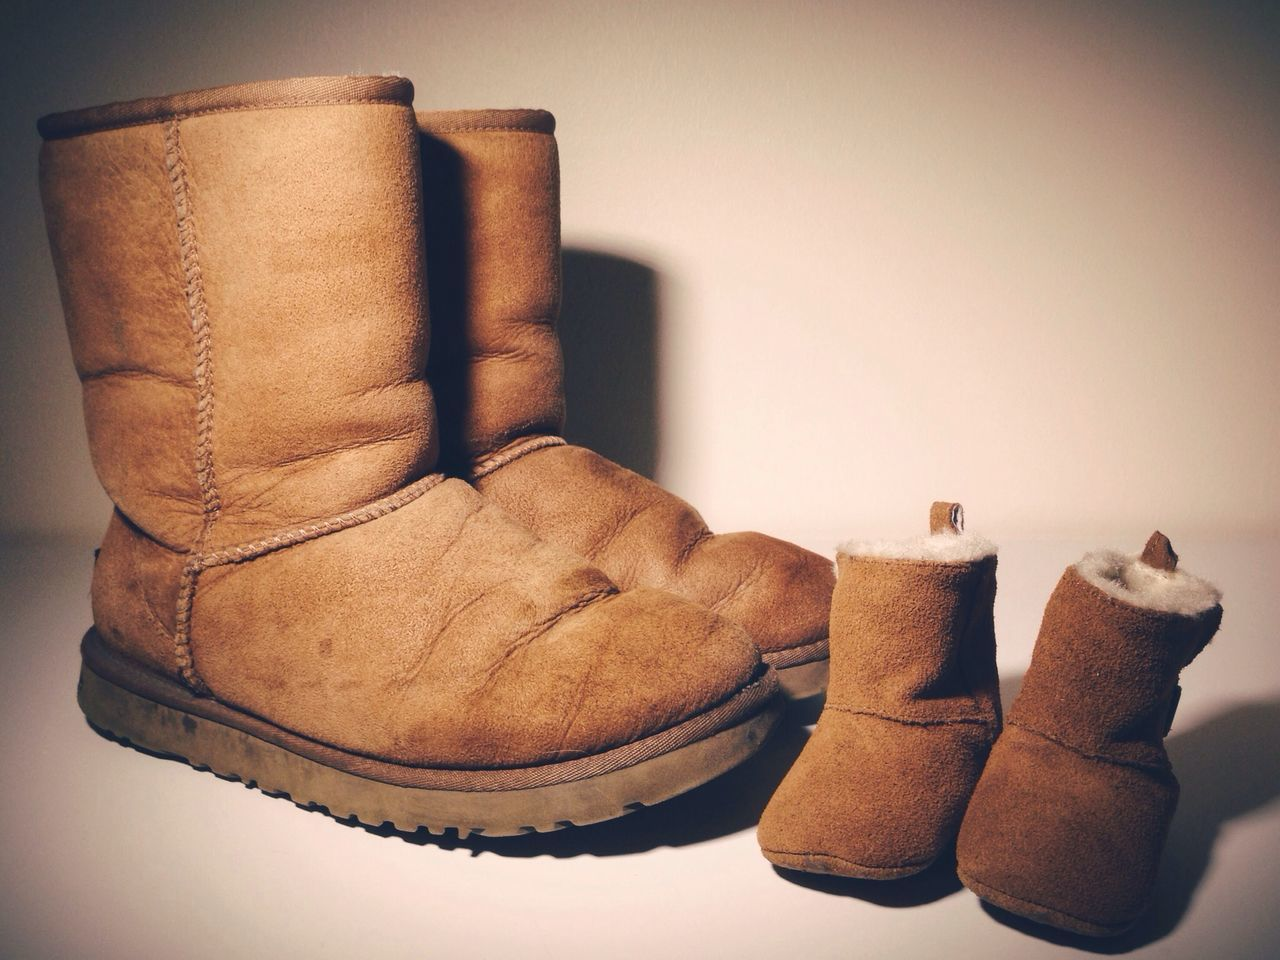 Small and big boots over white background